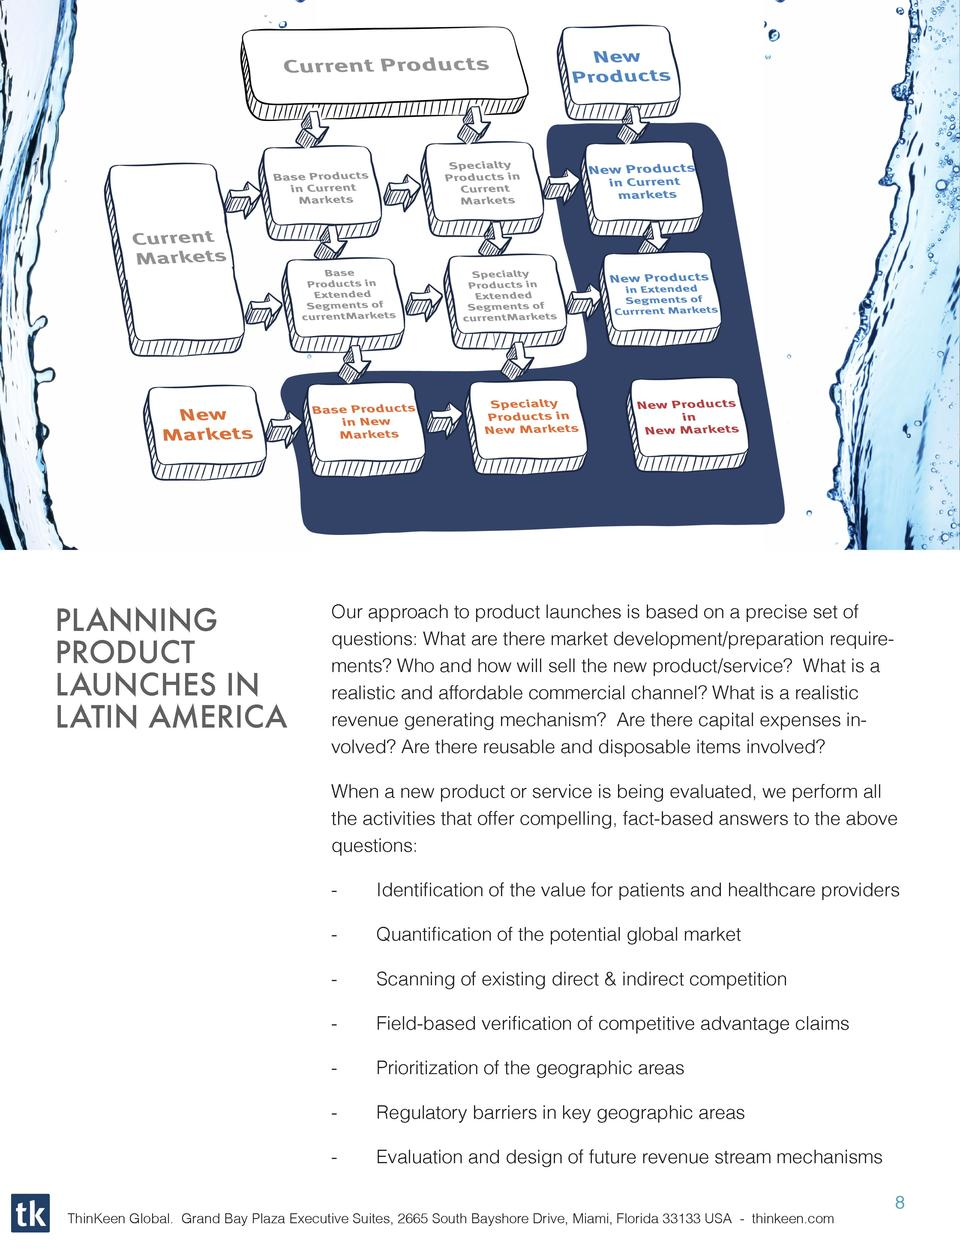 PLANNING PRODUCT LAUNCHES IN LATIN AMERICA  Our approach to product launches is based on a precise set of questions  What ...